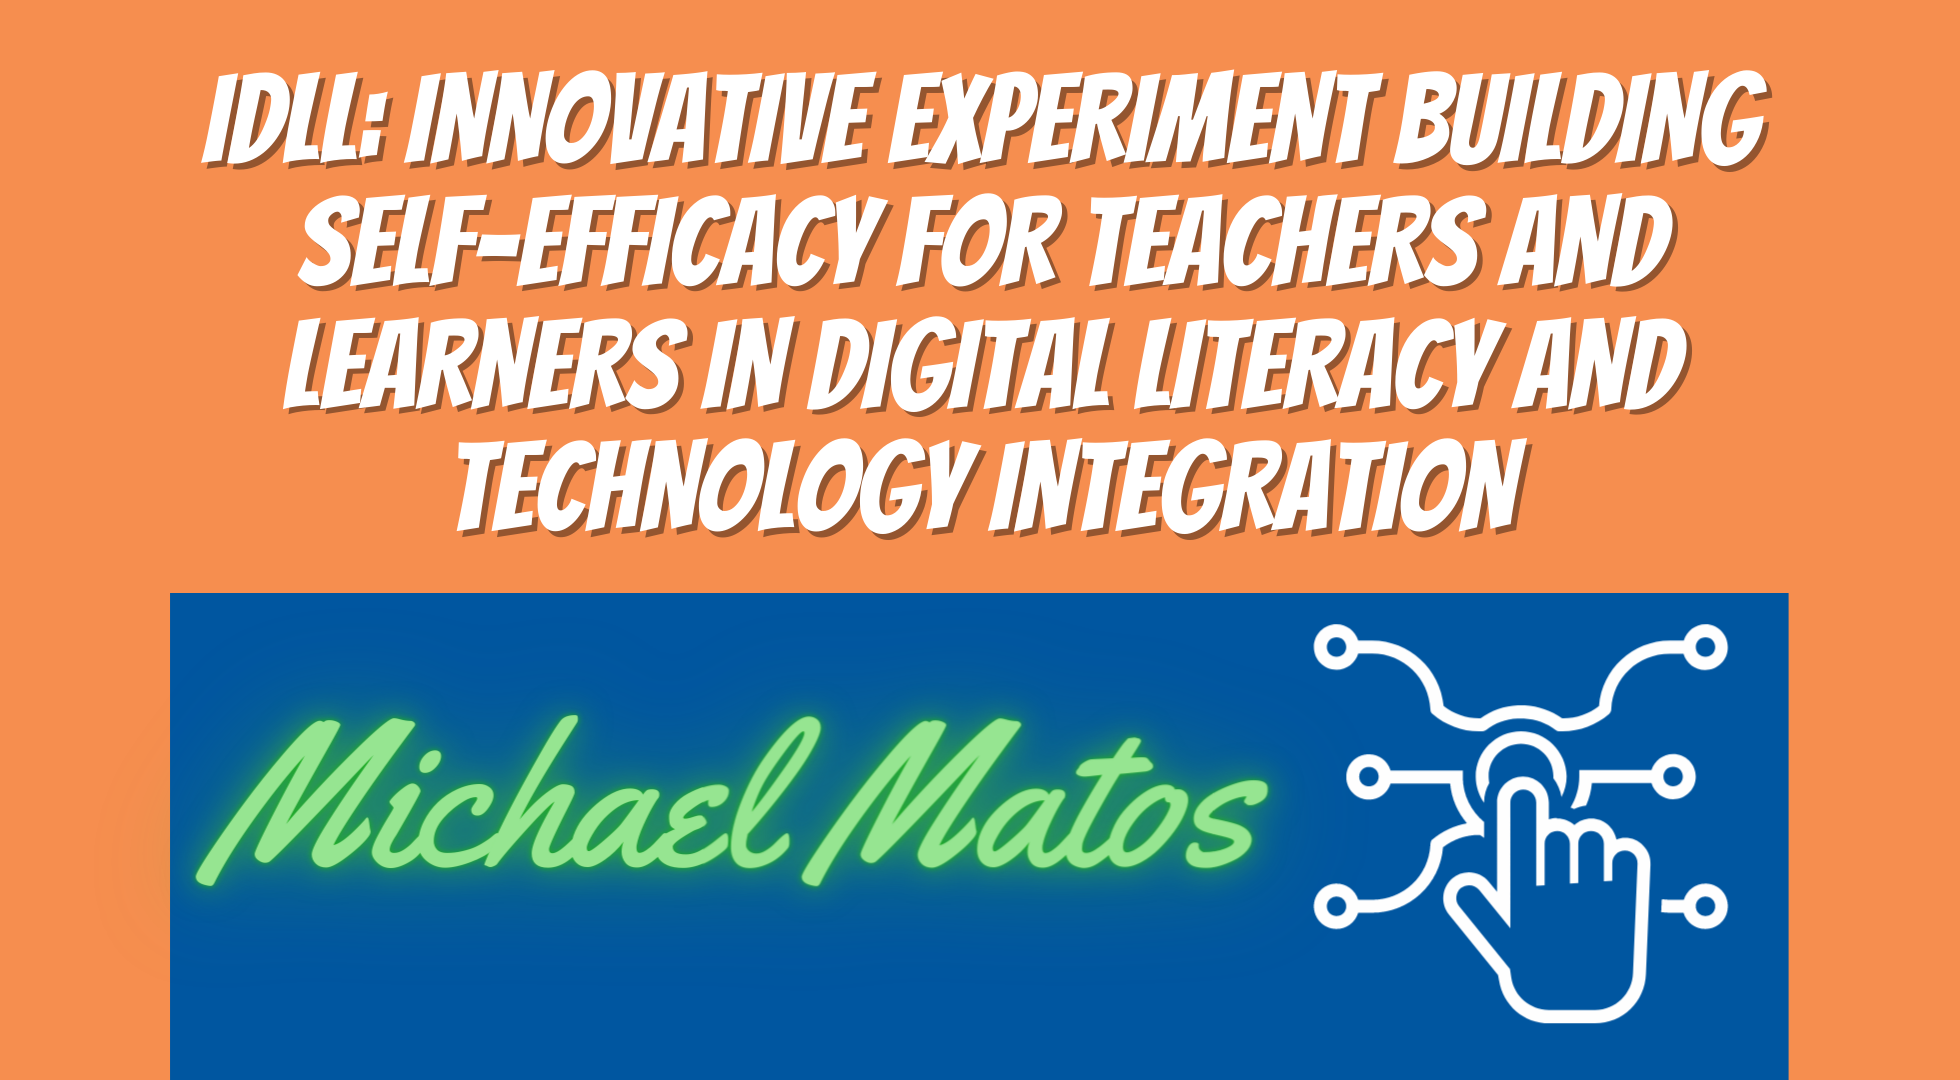 IDLL: Innovative Experiment Building Self-Efficacy for Teachers and Learners in Digital Literacy and Technology Integration